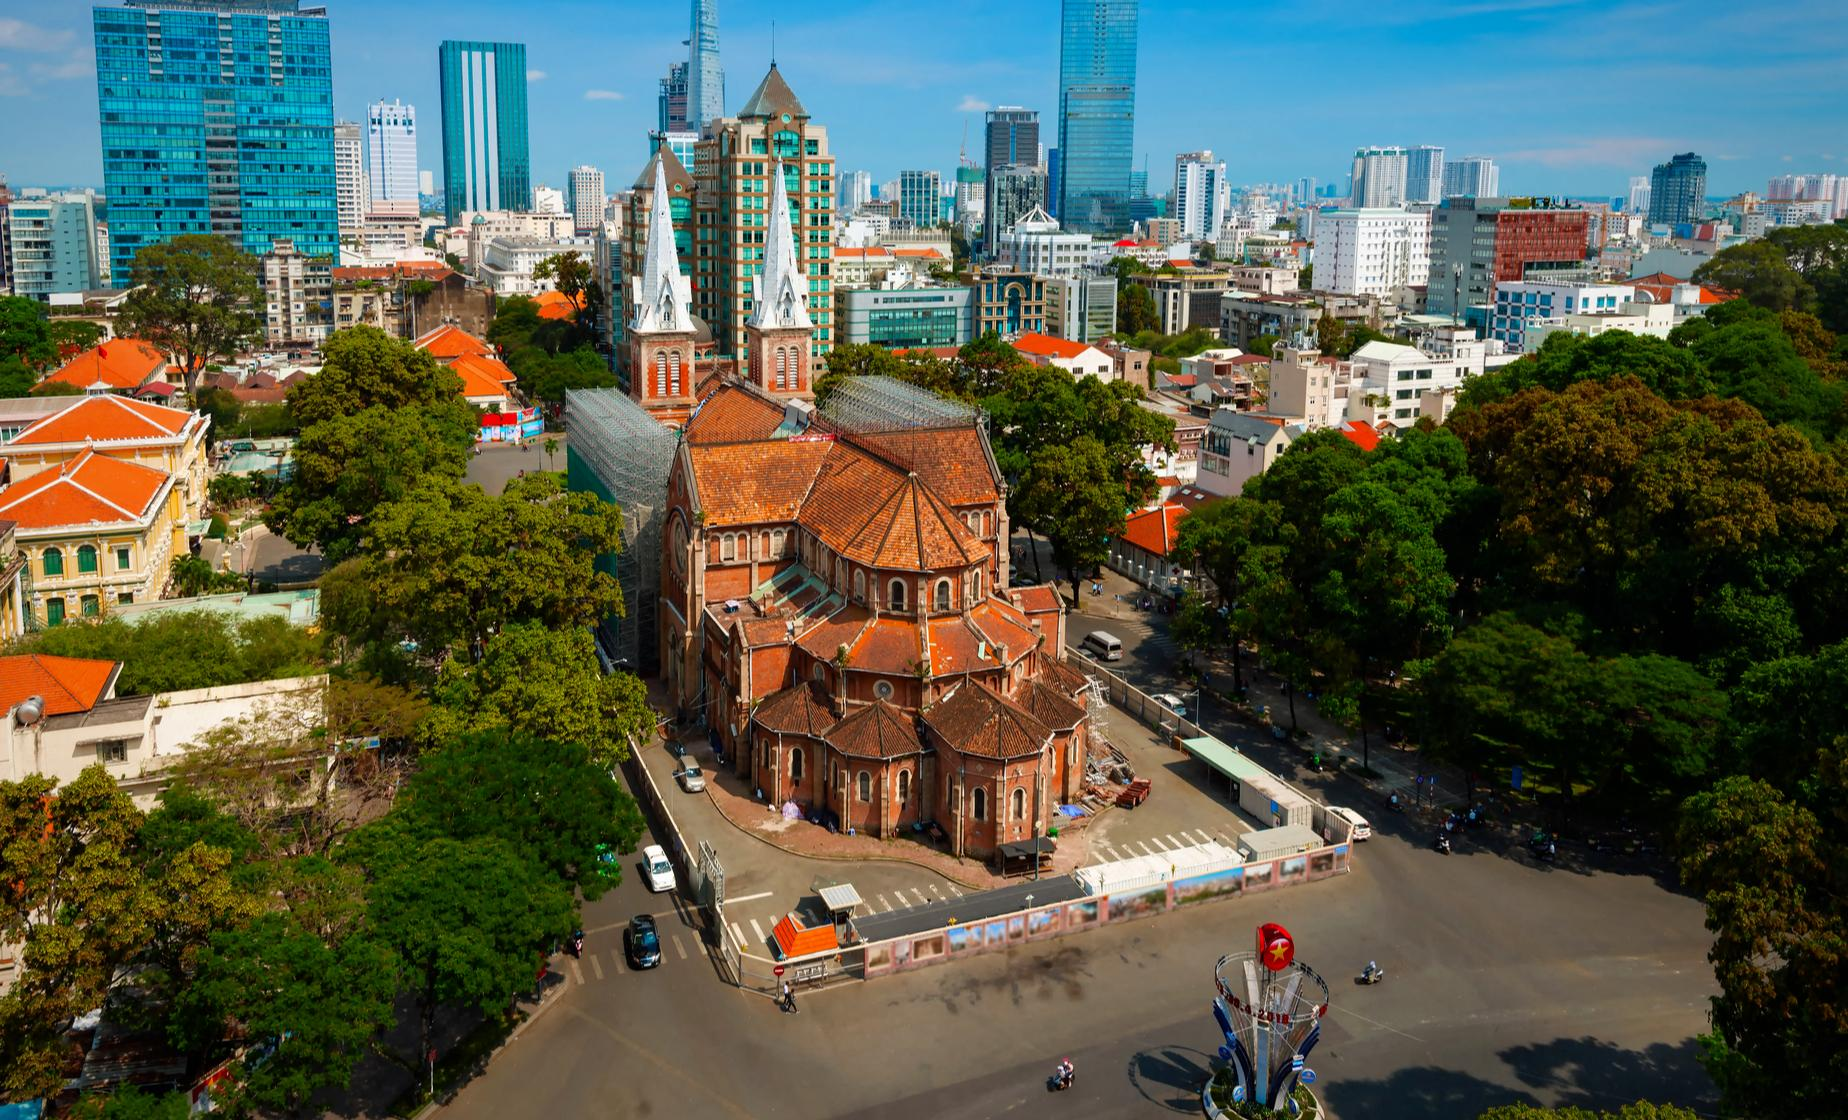 Best of Ho Chi Minh City,  the Reunification Palace, Presidential Palace, Twin Towers of the Notre Dame Cathedral, Le Cong Kieu Antique Street, Cao Dai Temple,